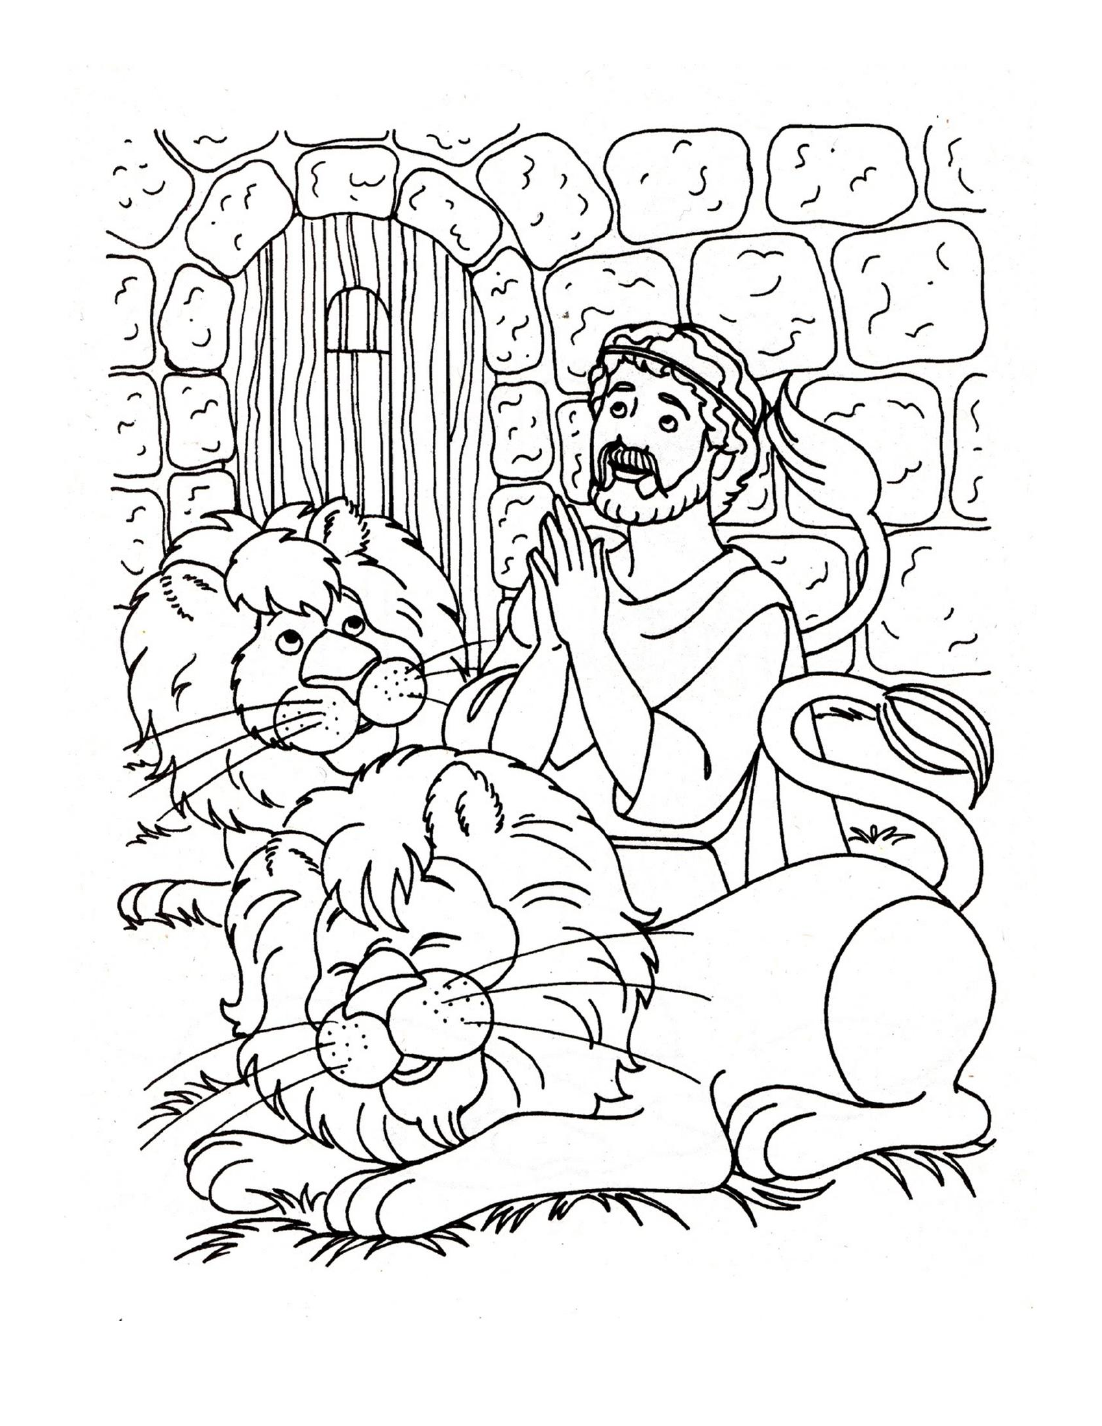 Free printable coloring pages of daniel in the lions den - Daniel And The Lions Den Crafts And Activities For Kids